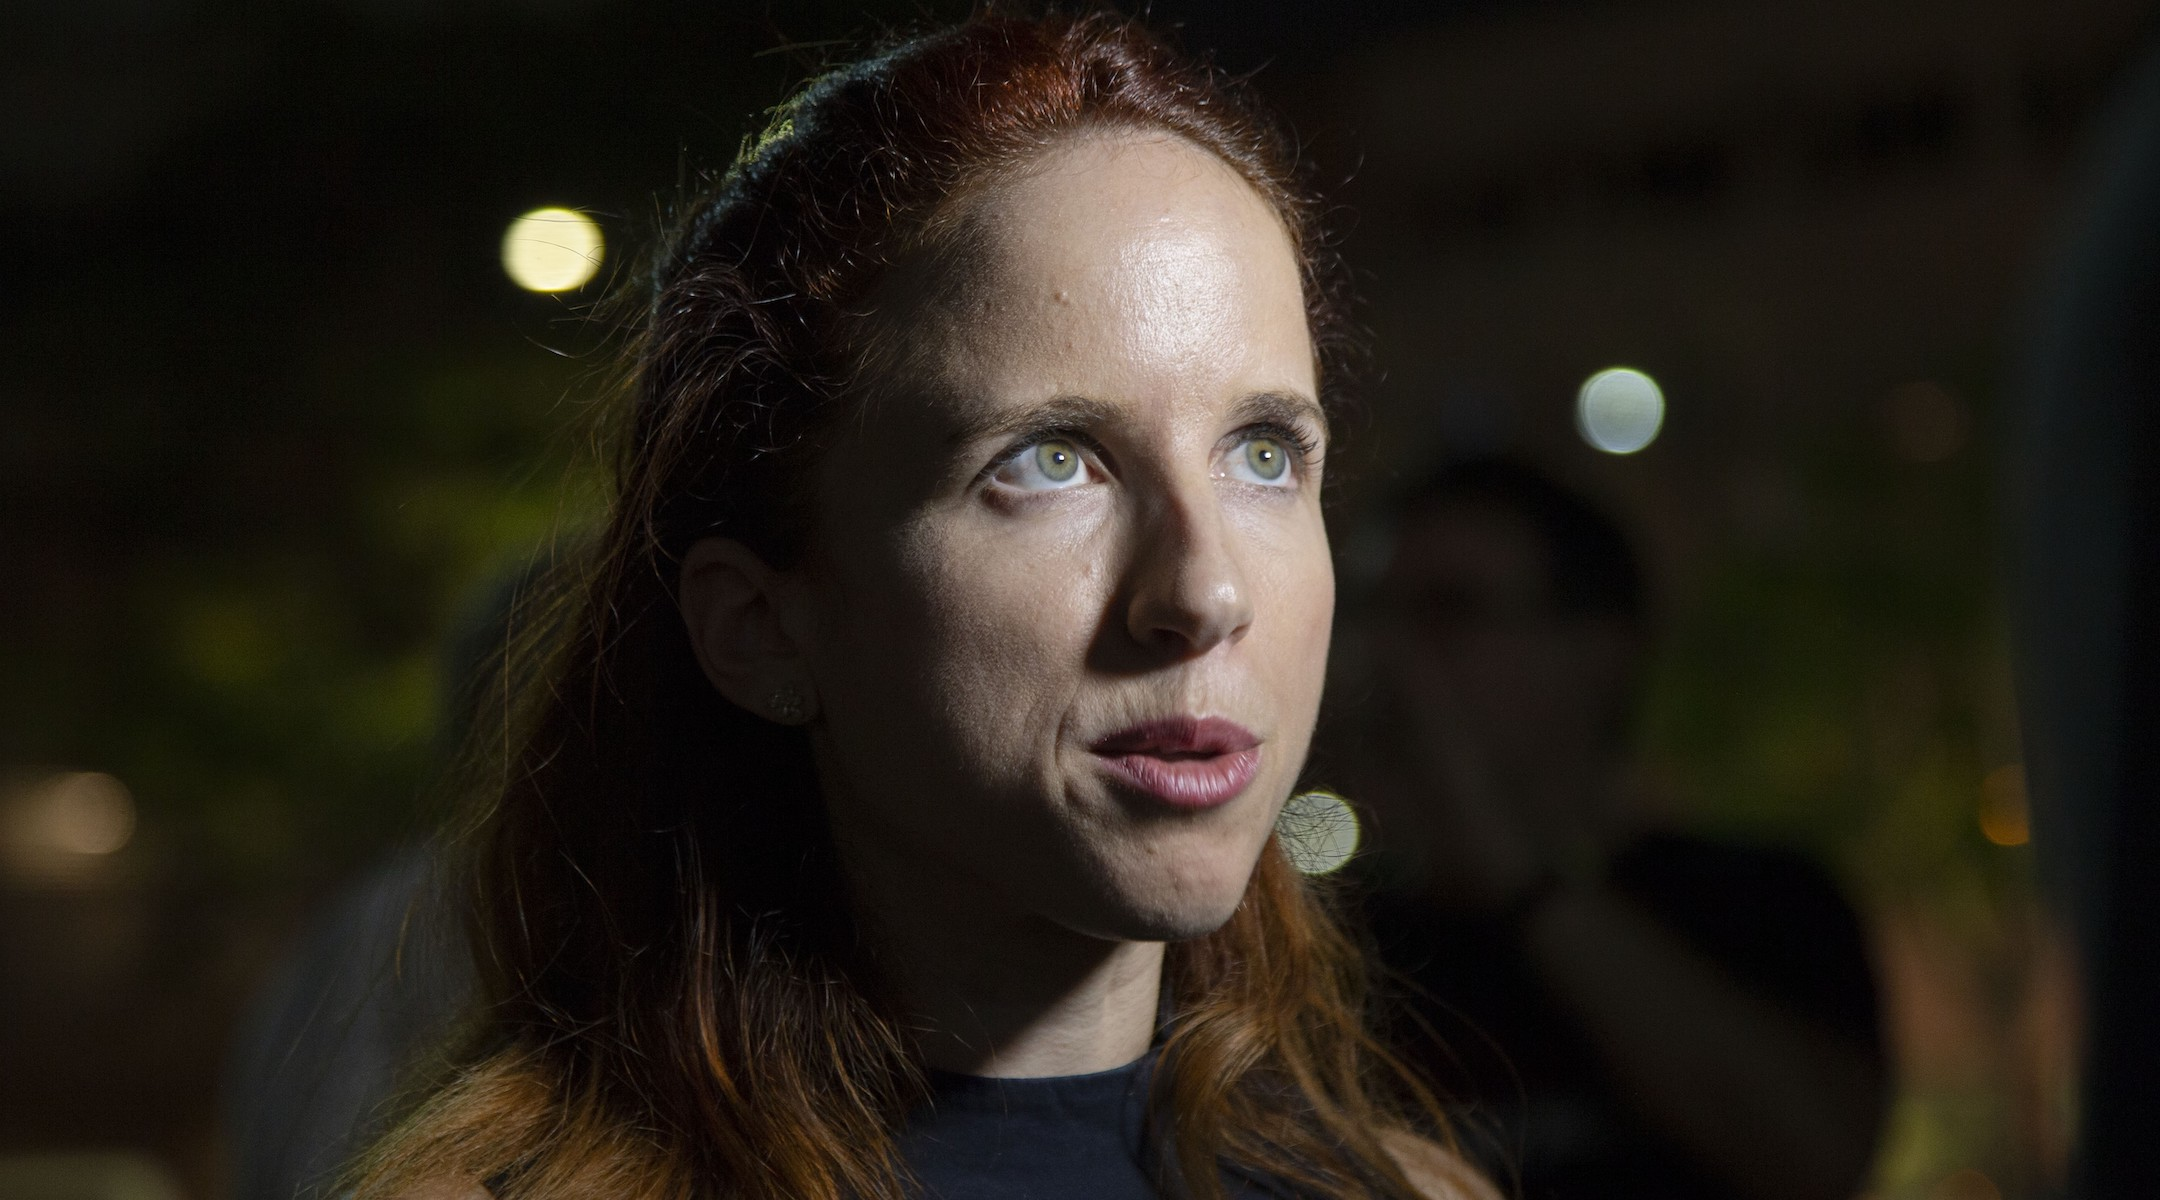 Stav Shaffir speaks to reporters ahead of elections in Tel Aviv on September 14, 2019. (Faiz Abu Rmeleh/Getty Images)